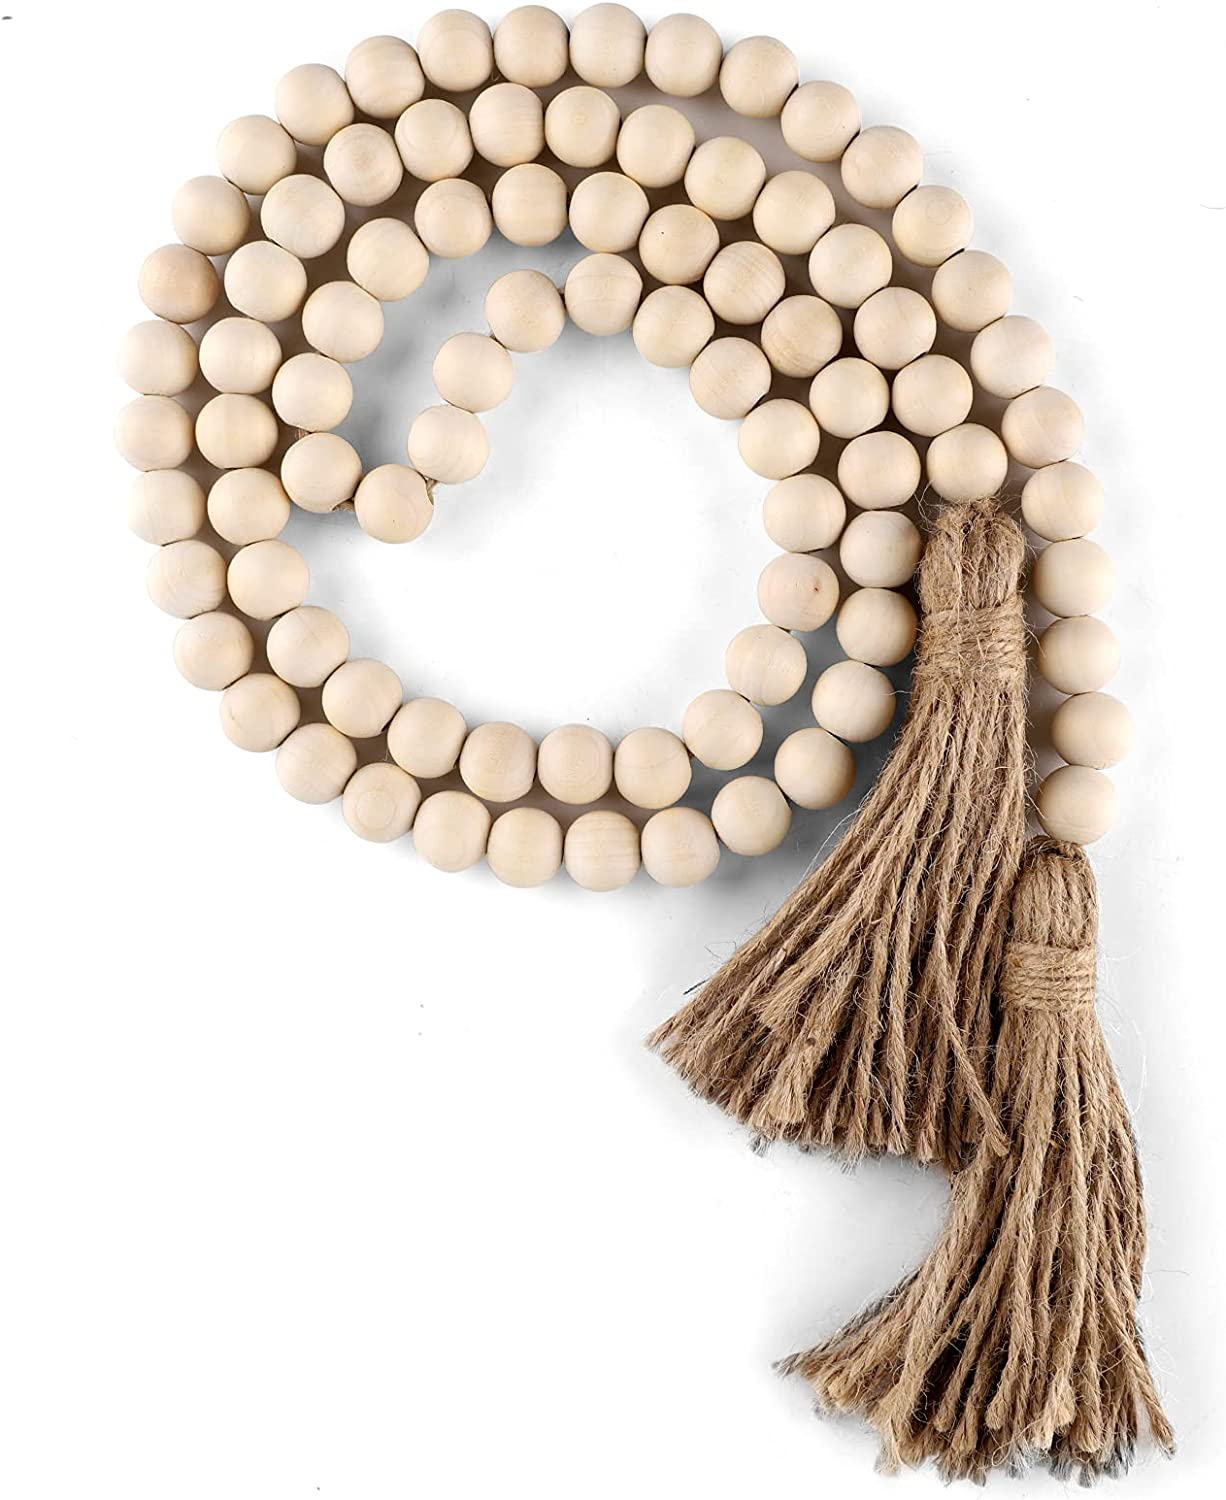 Wood Bead Garland with Tassels Mail order cheap Pray Farmhouse Bargain sale Beads 58in Rustic